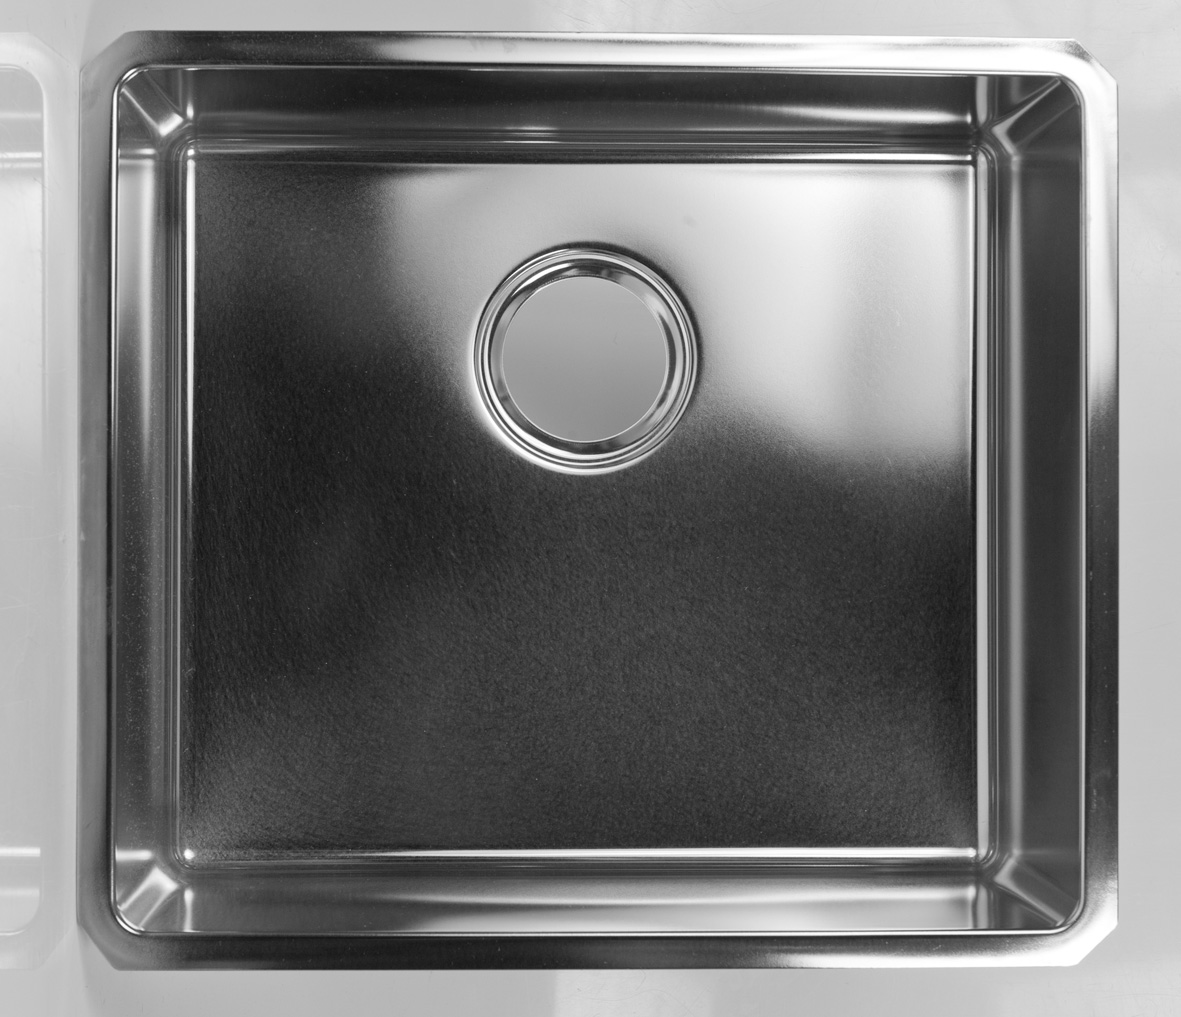 Tight corner radius sink 304 stainless steel 450 x 400 x 200